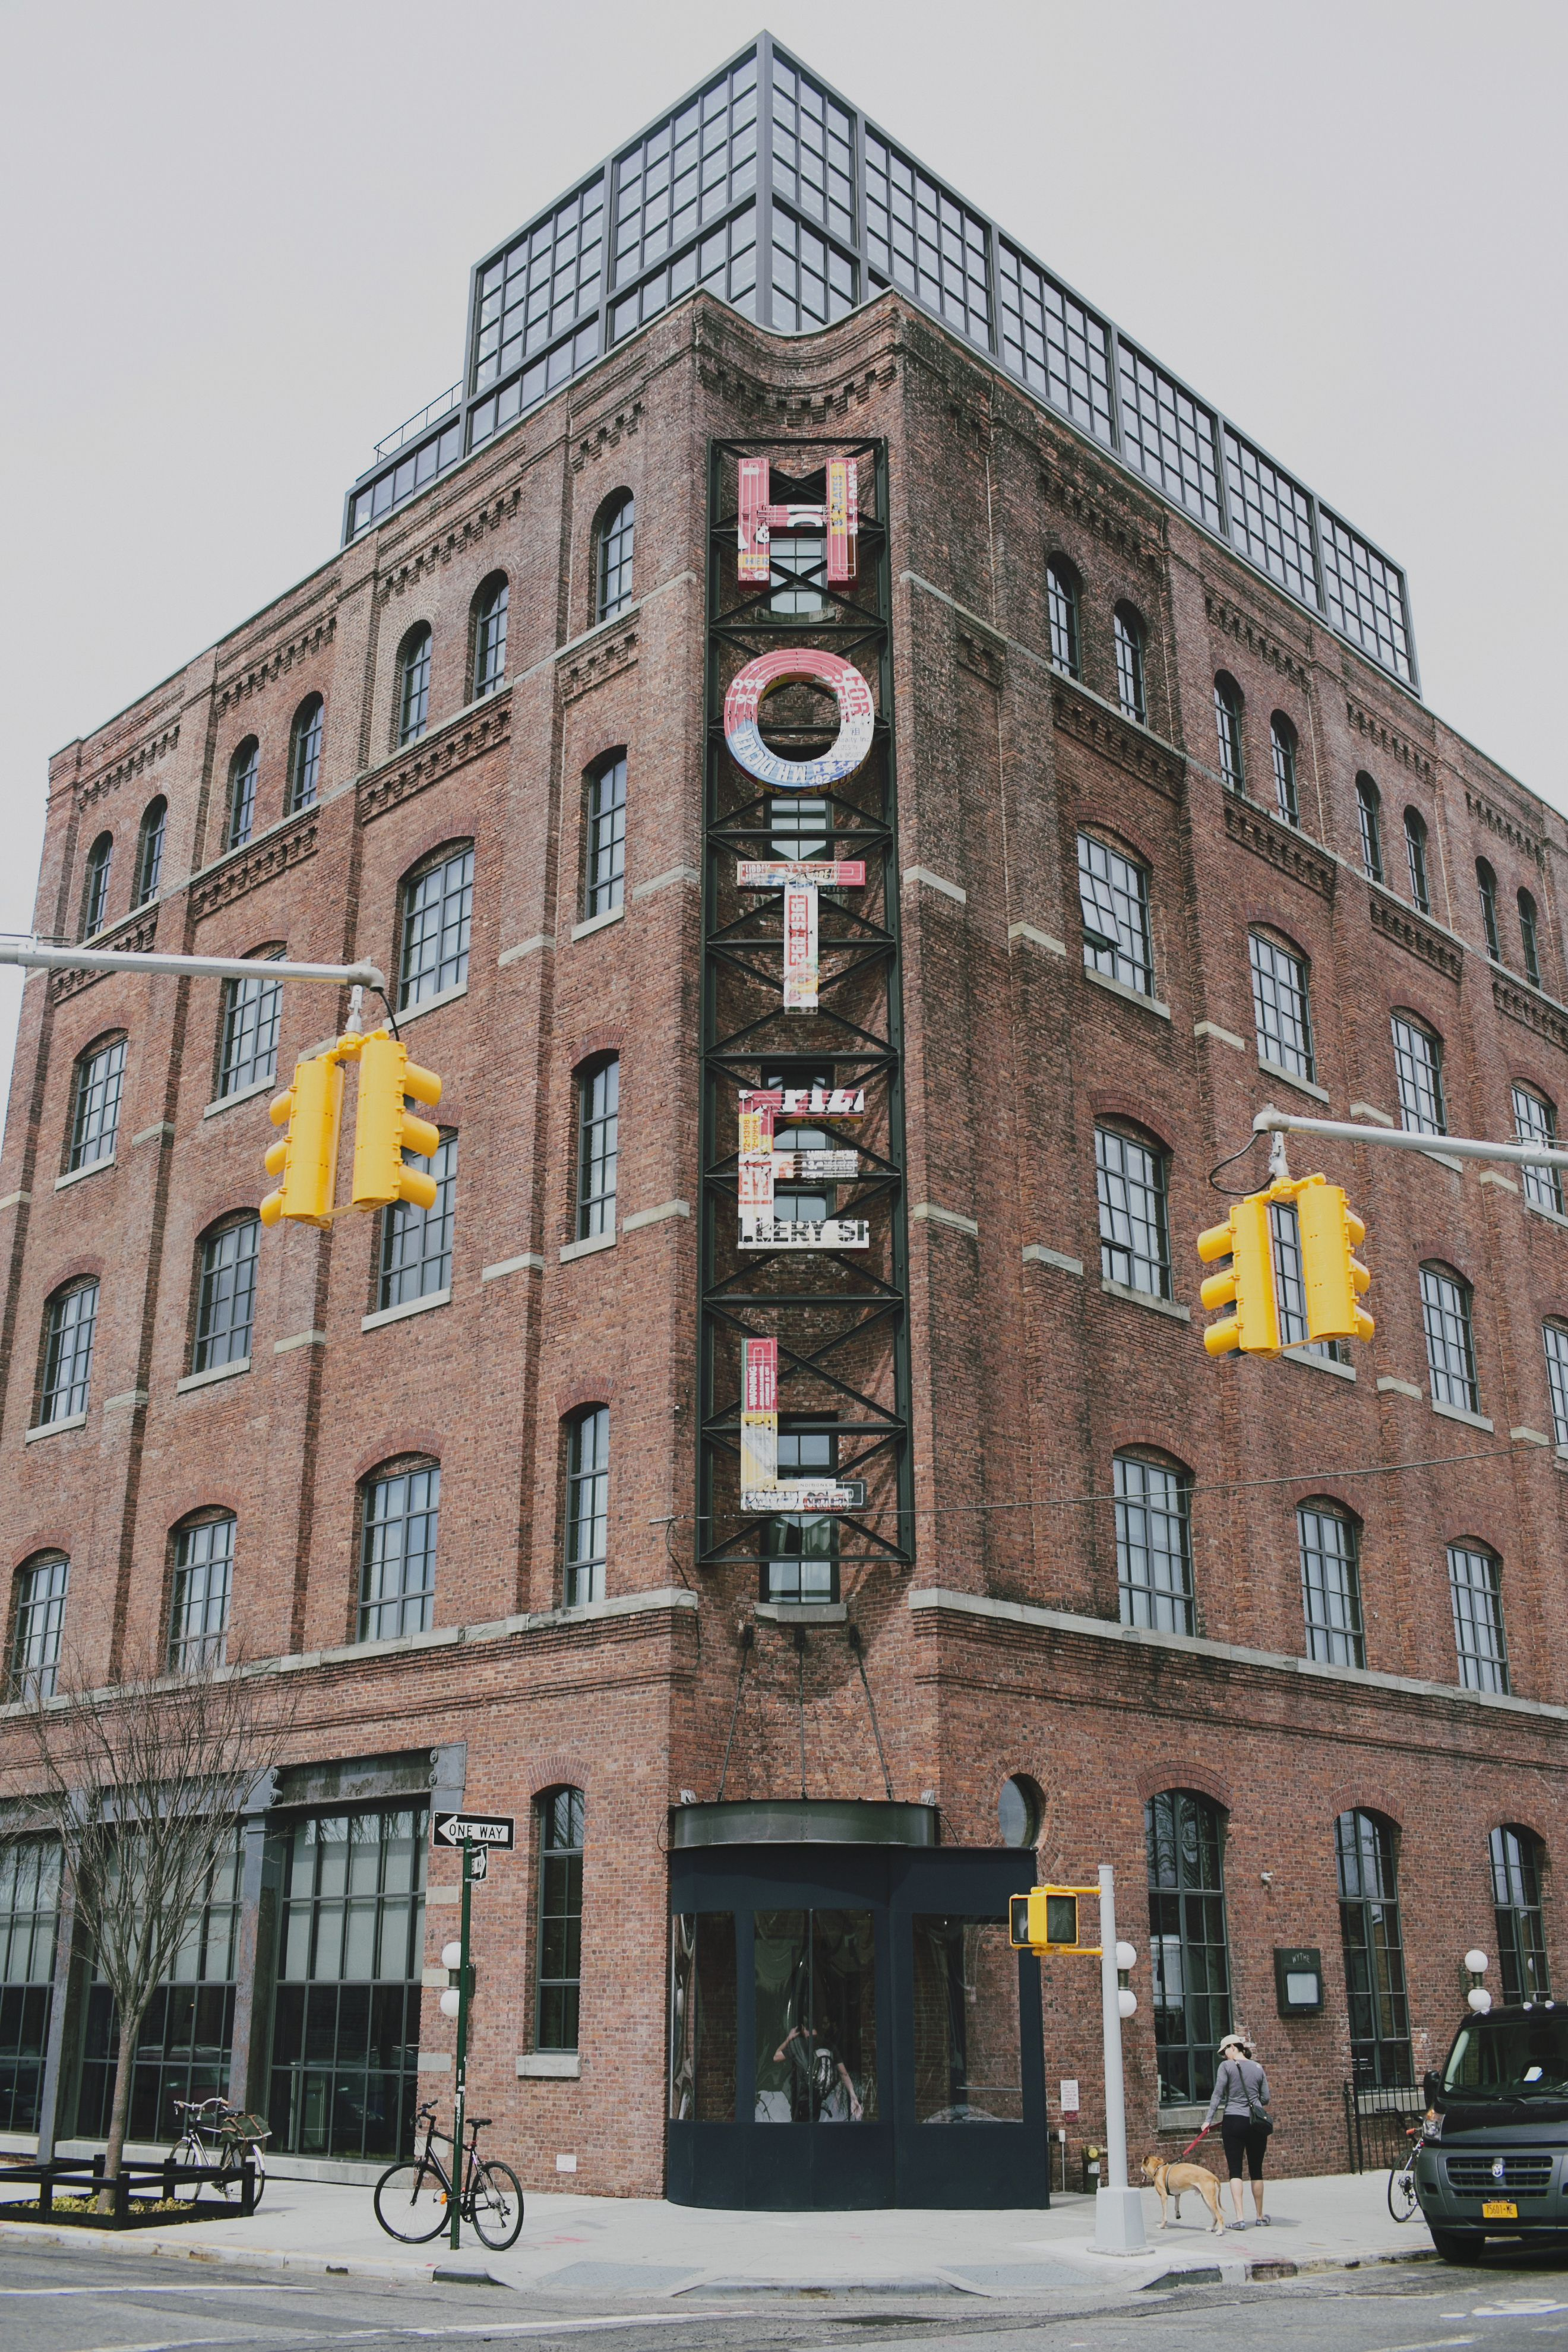 5 Things A Travel Guide To Williamsburg